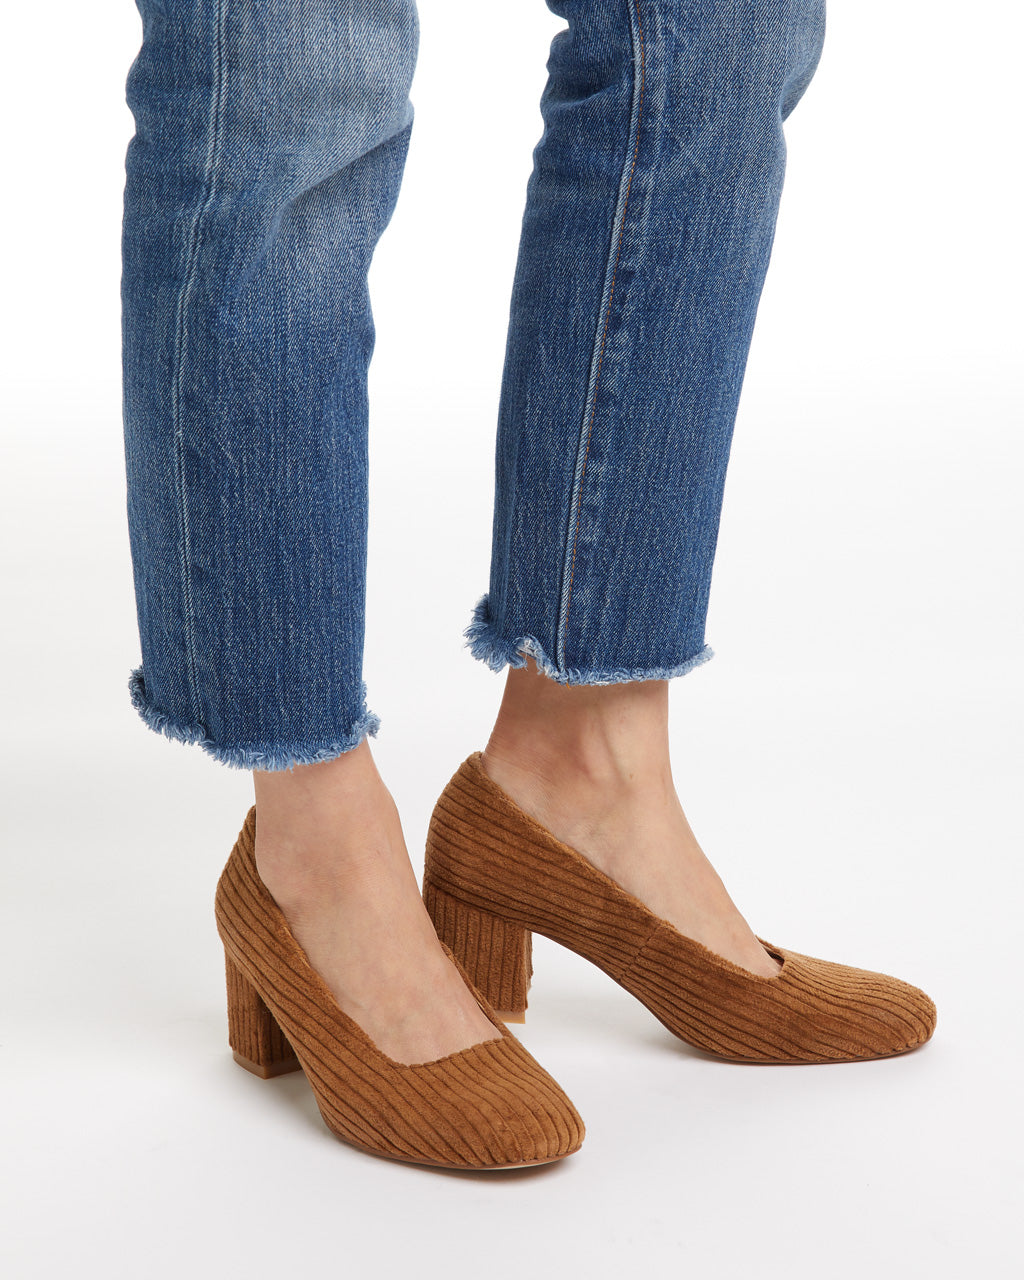 Collen Heel - Brown Cord by e8 by